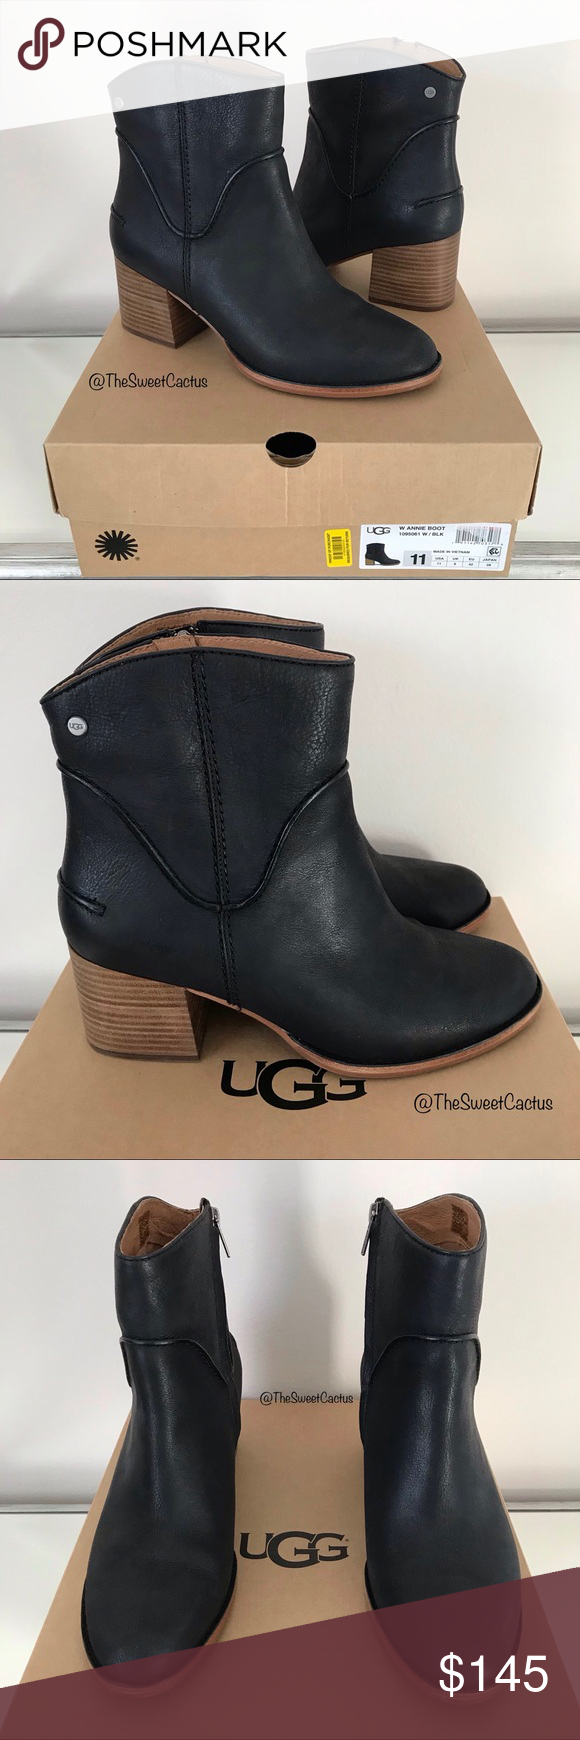 428a591a690 UGG Black Leather Annie Ankle Booties UGG Black Leather Annie Ankle ...